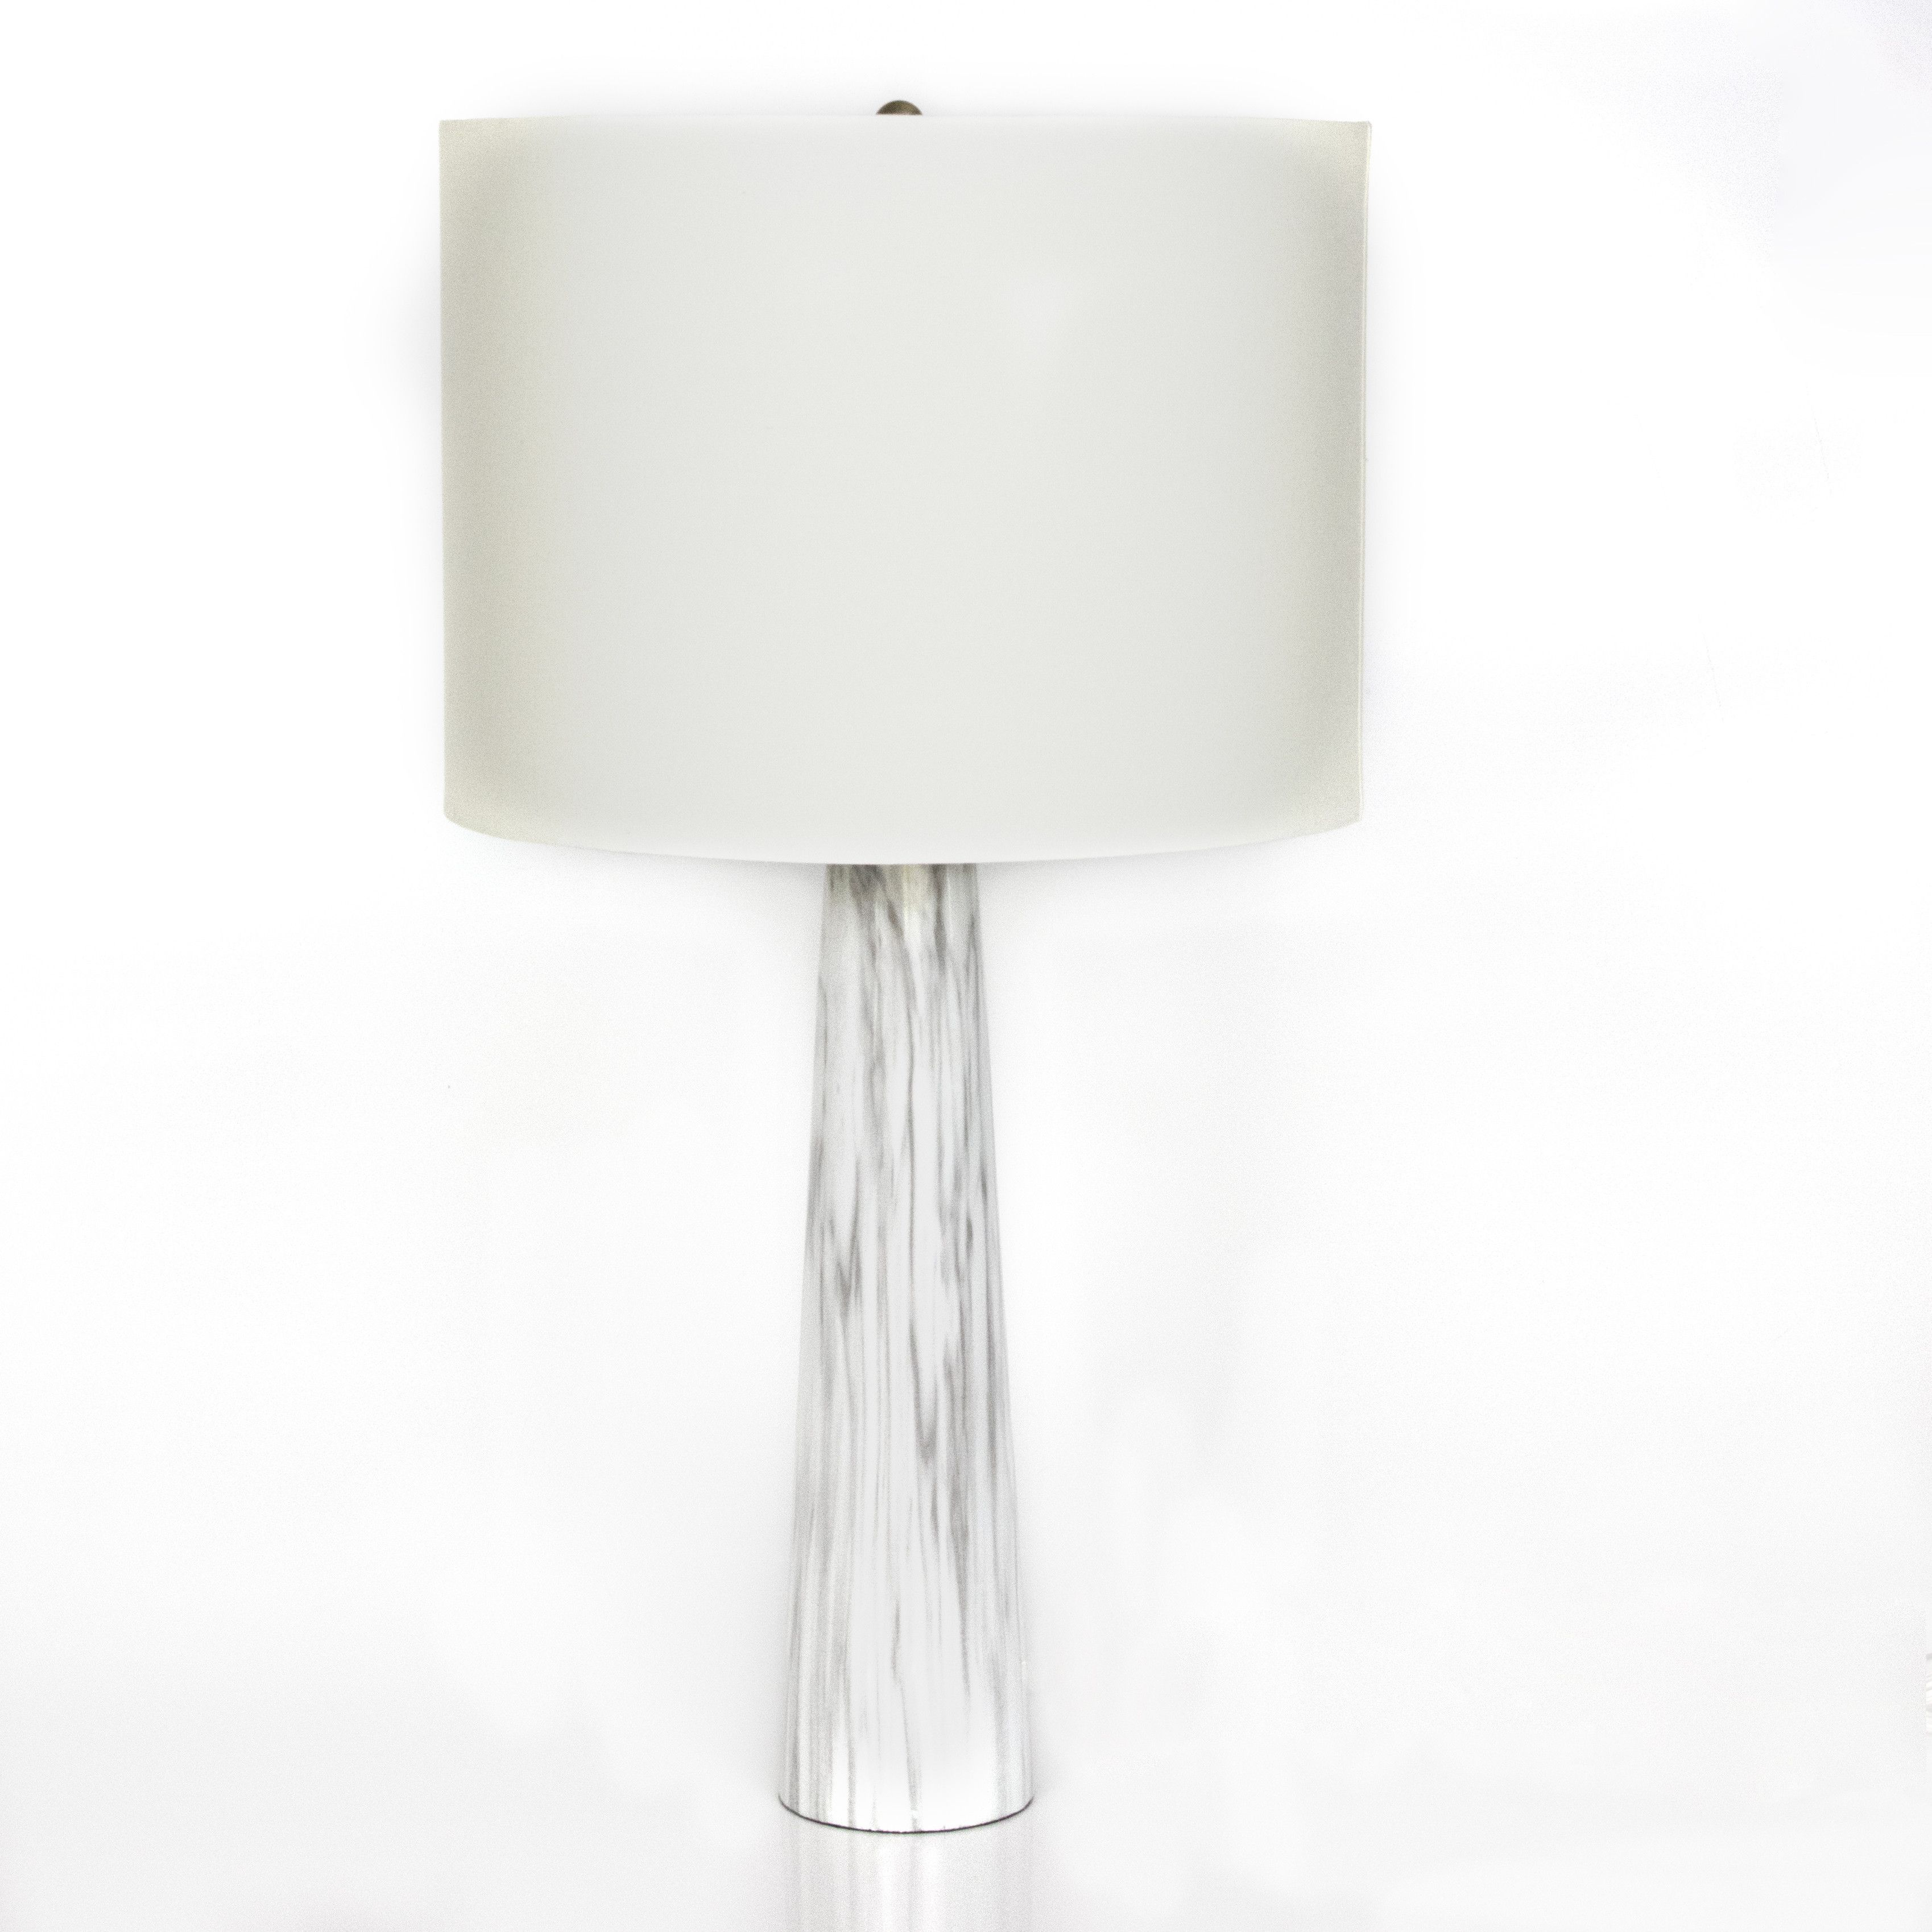 products menu lamp by marble jwda light detail